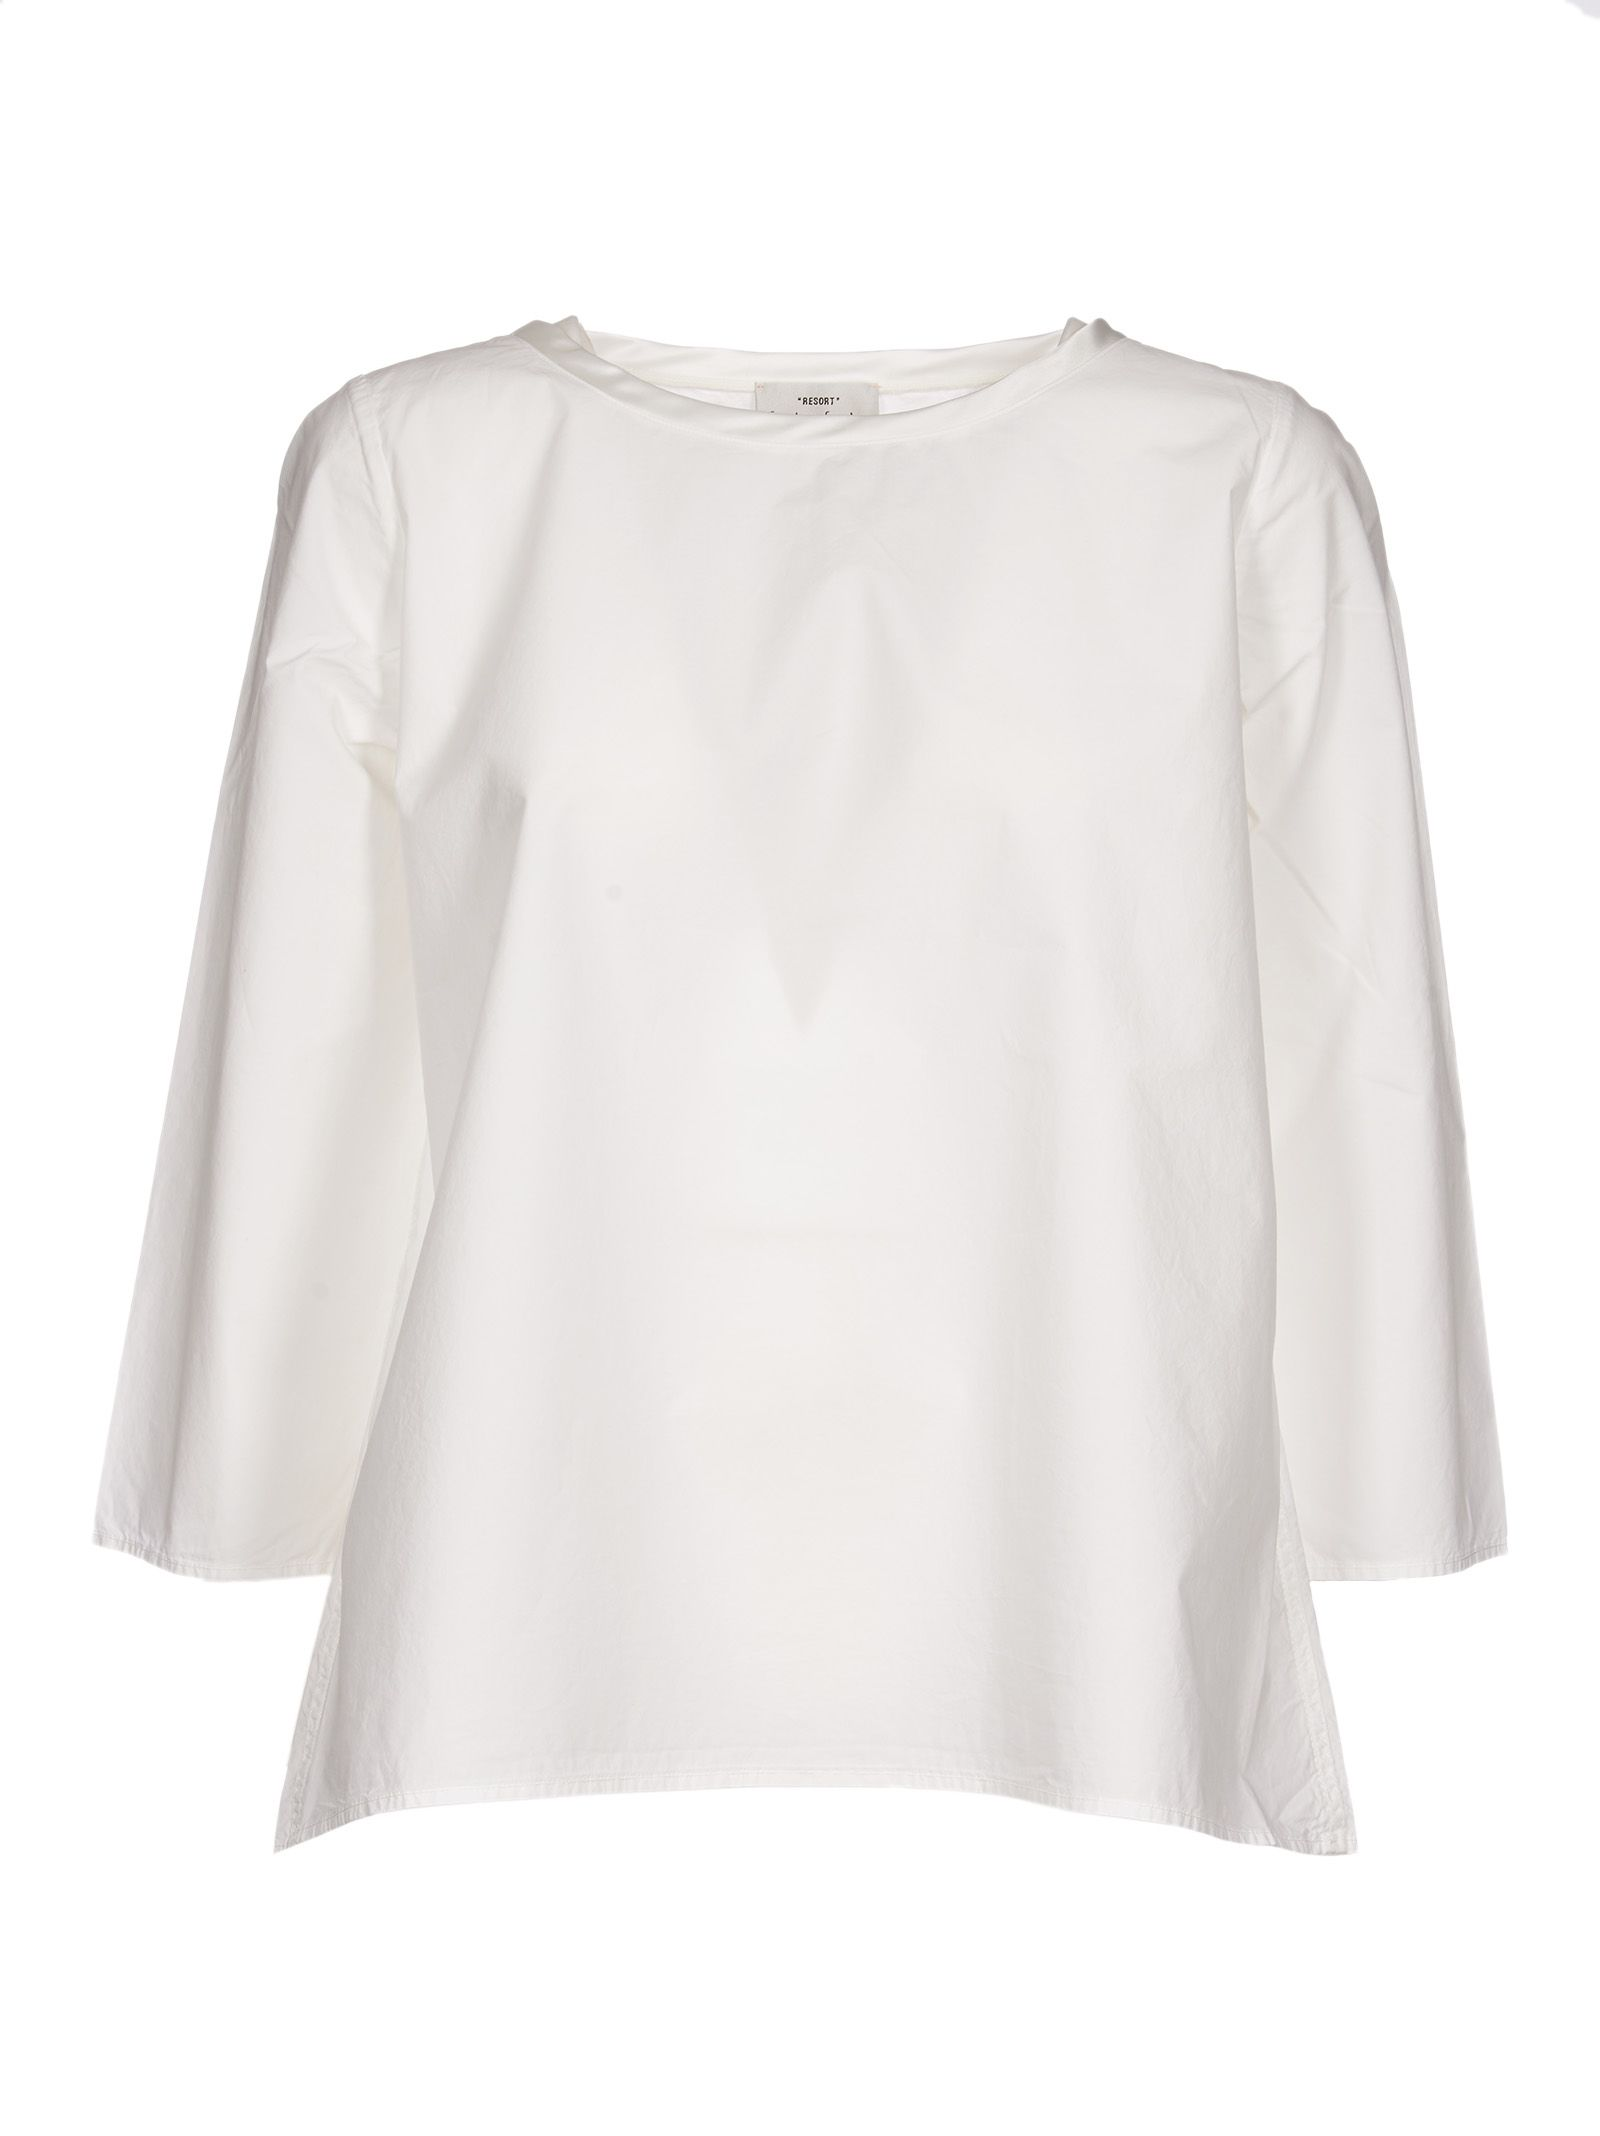 TOPWEAR - Tops Ivories Clearance Online Fake Outlet Collections Pictures Sale Online c2WYvW